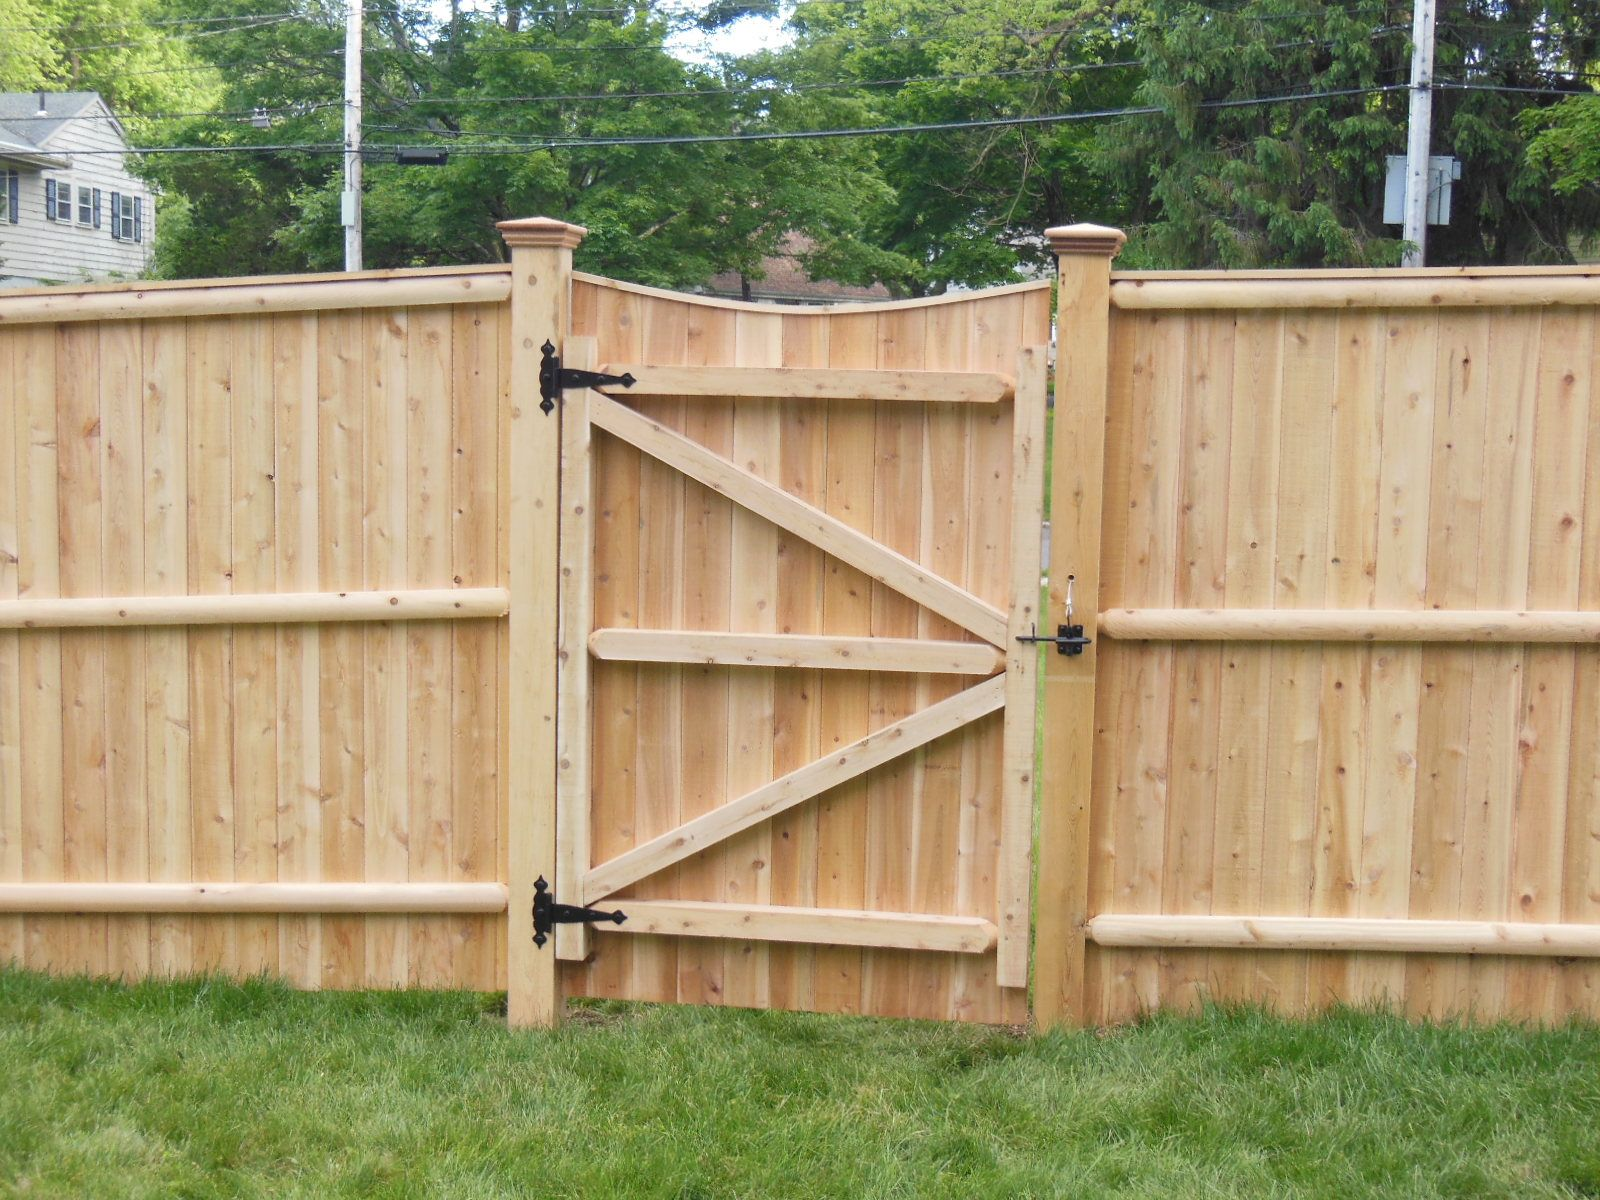 Fence gate designs cedar lattice with gate fences boston ma home improvement ideas Building a fence